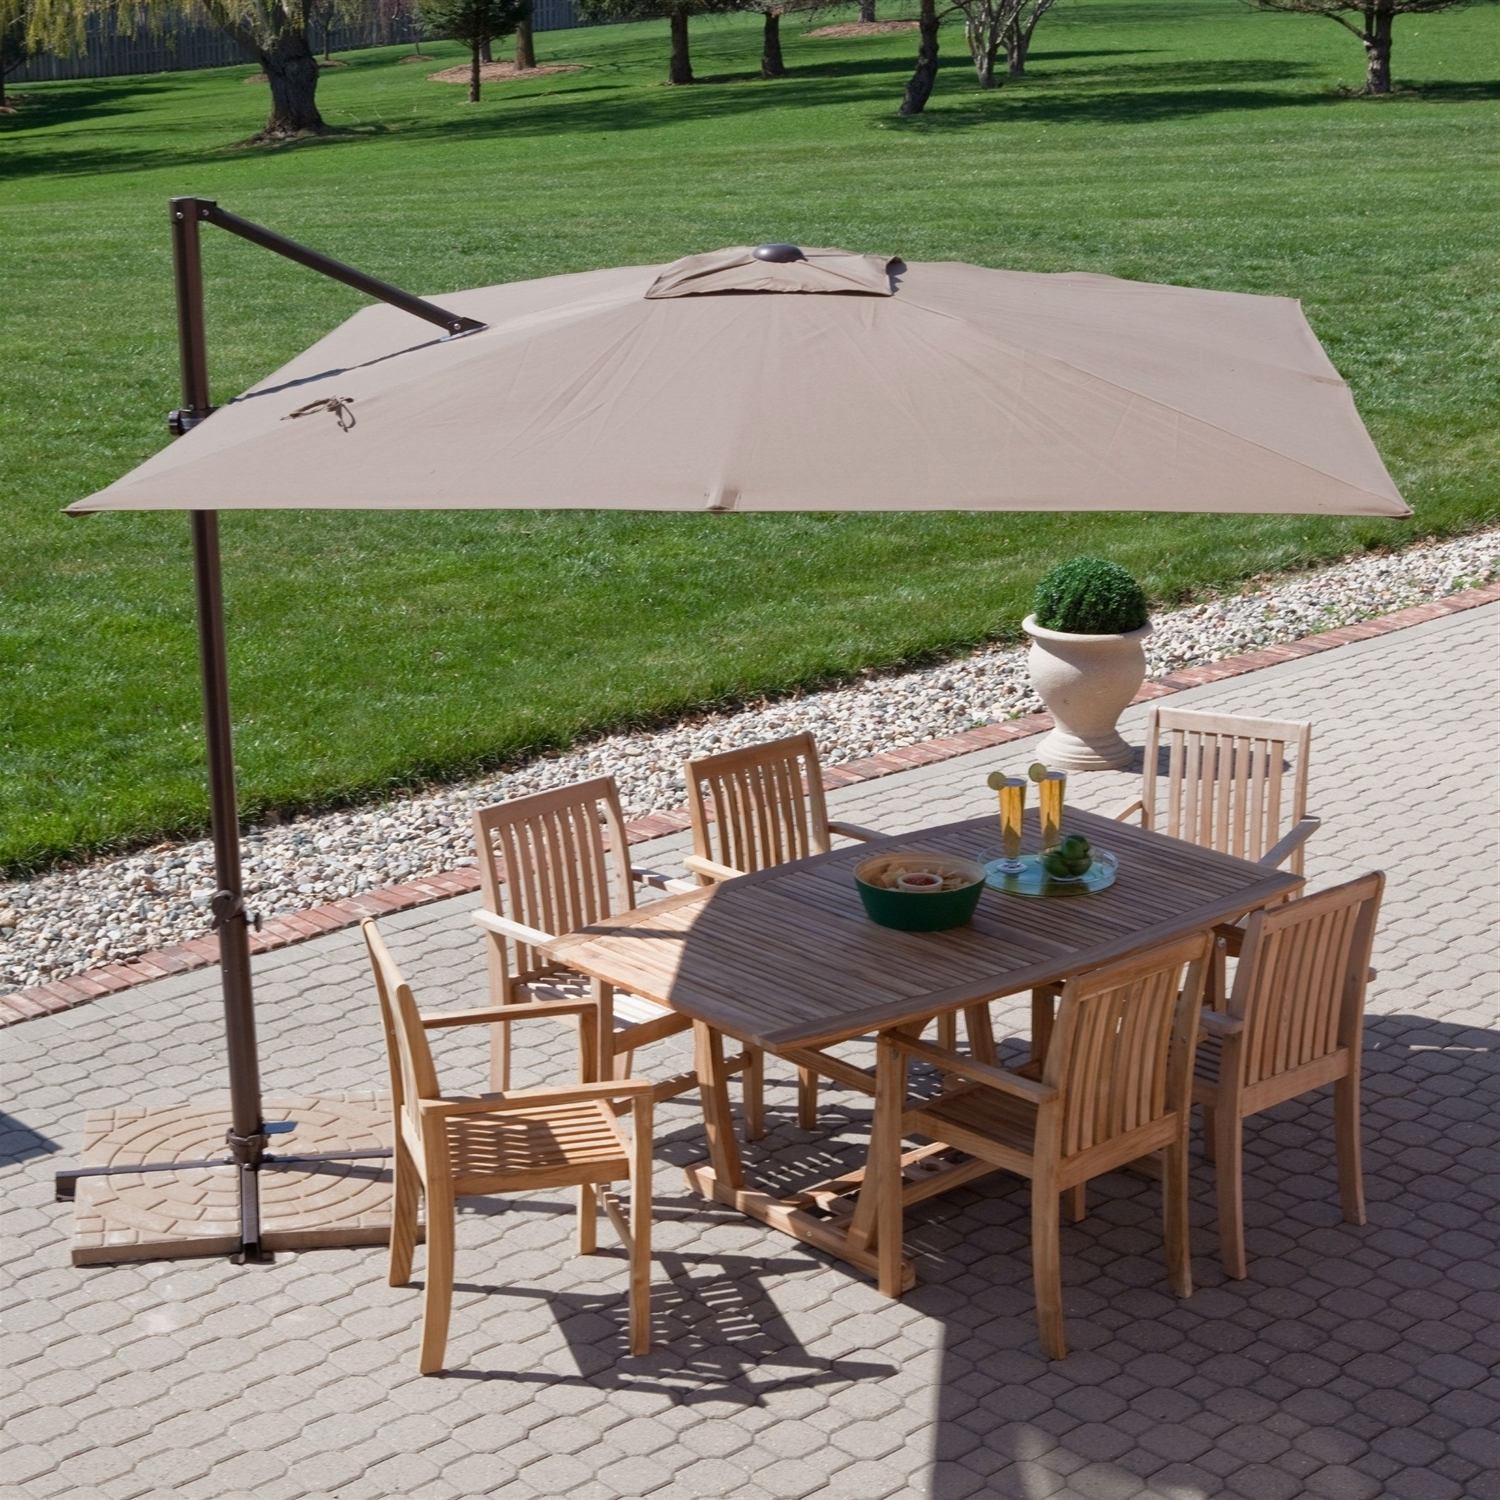 2019 Patio Umbrellas With Table Inside A Guide To Buying Offset Patio Umbrella – Blogbeen (View 1 of 20)